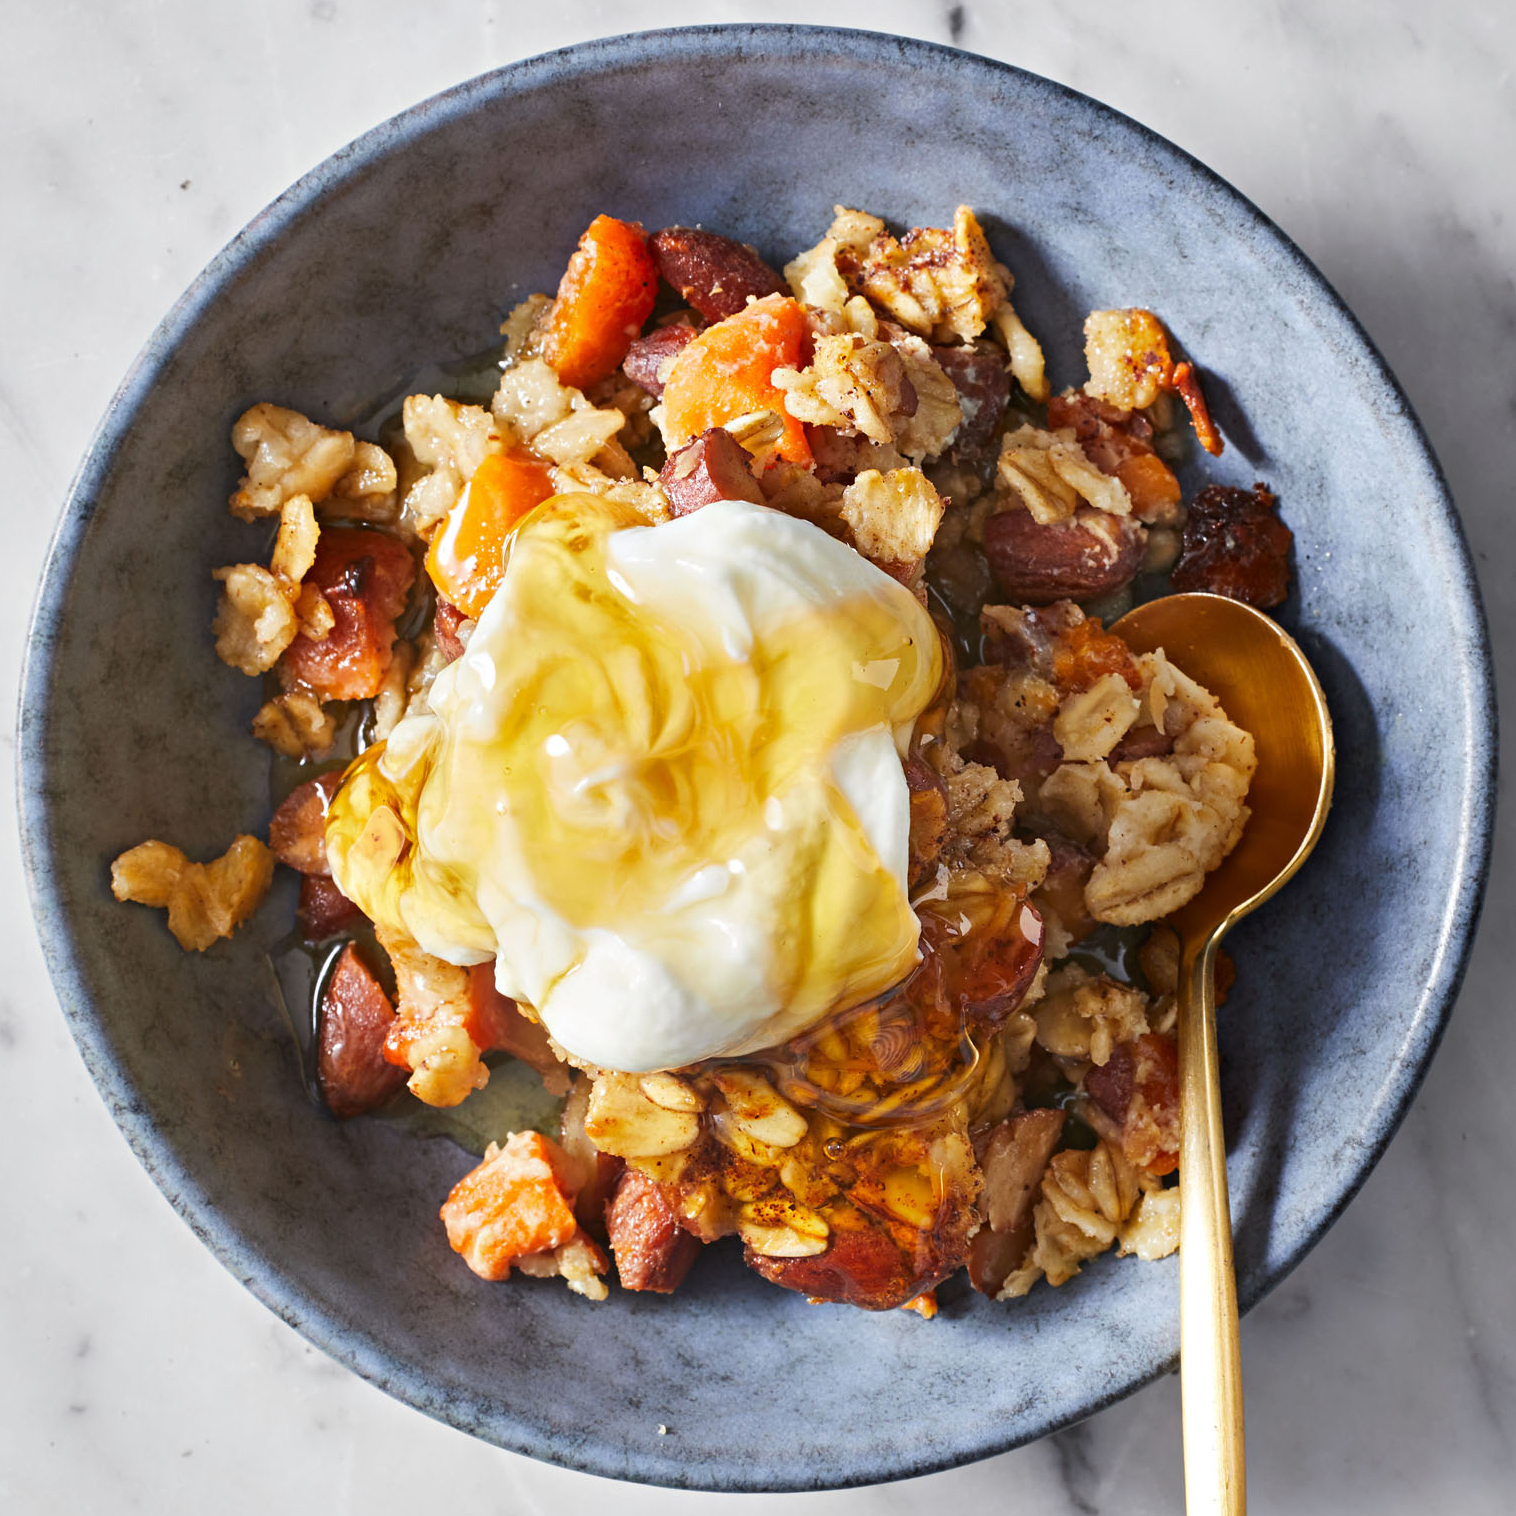 baked oatmeal with apricots and cardamom